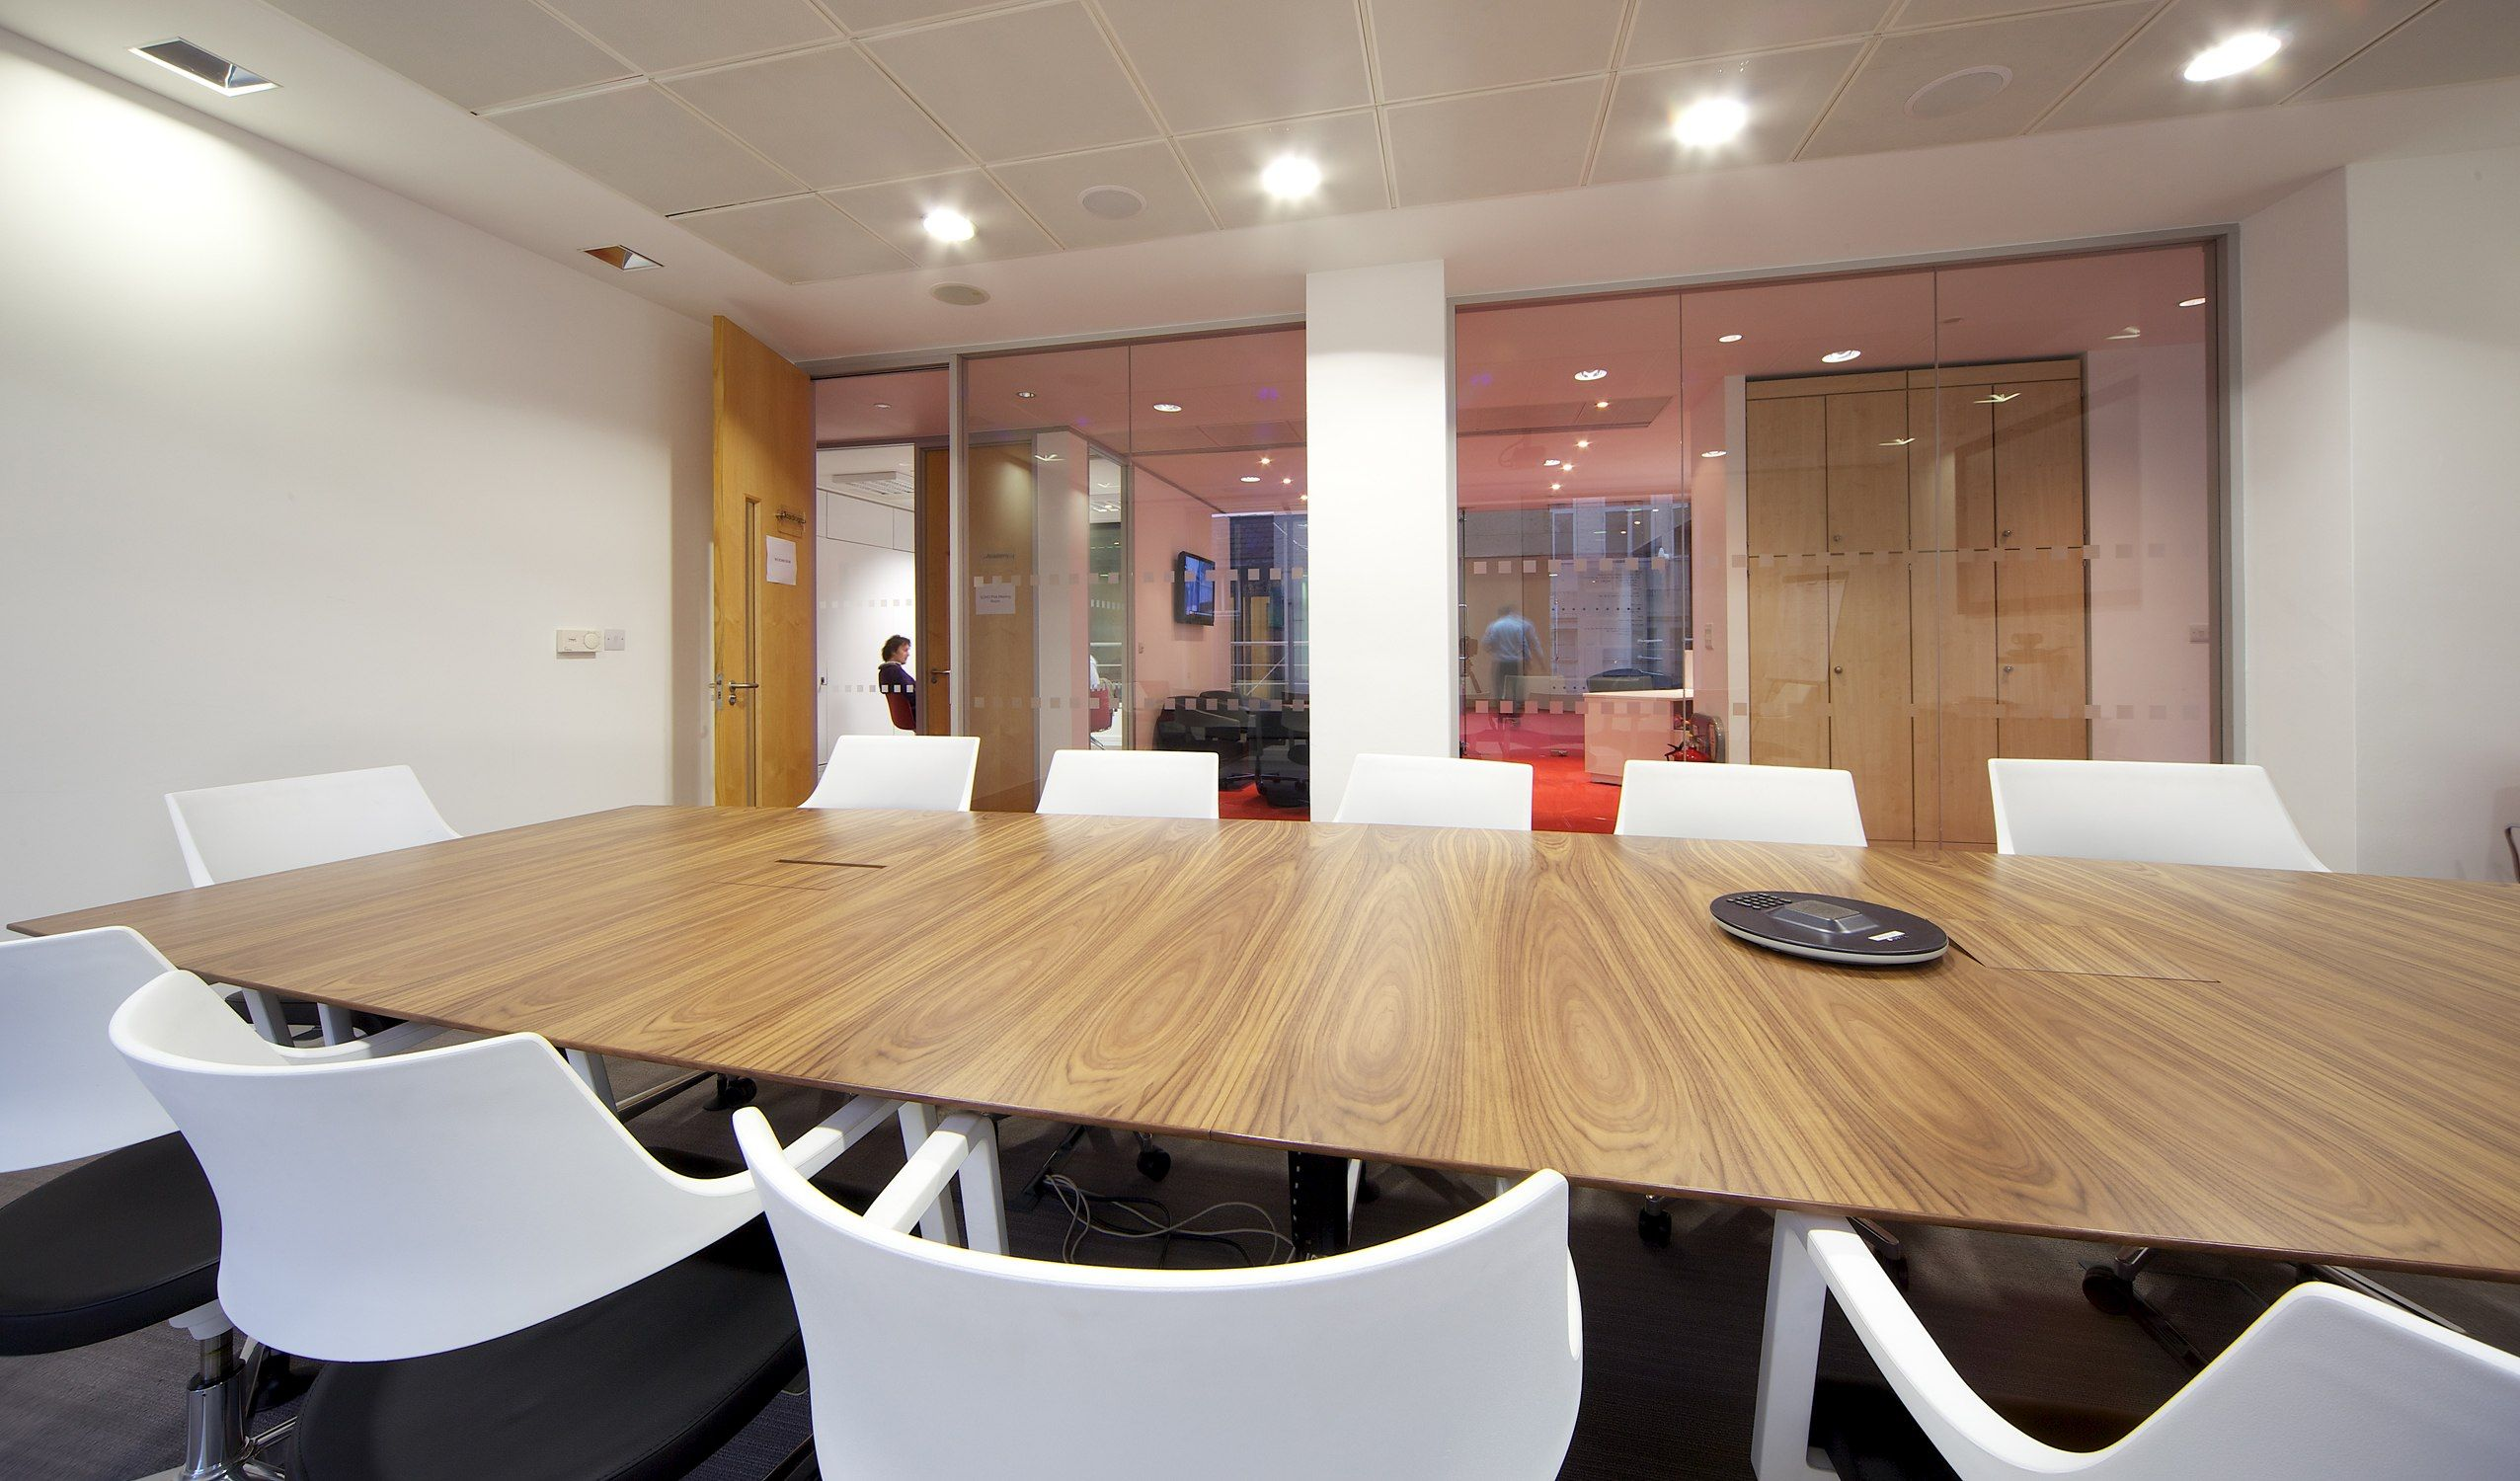 Board room, 0 - 10,000 sq. ft. 6 weeks, London W1, another design and fit out project by www.oktra.co.uk